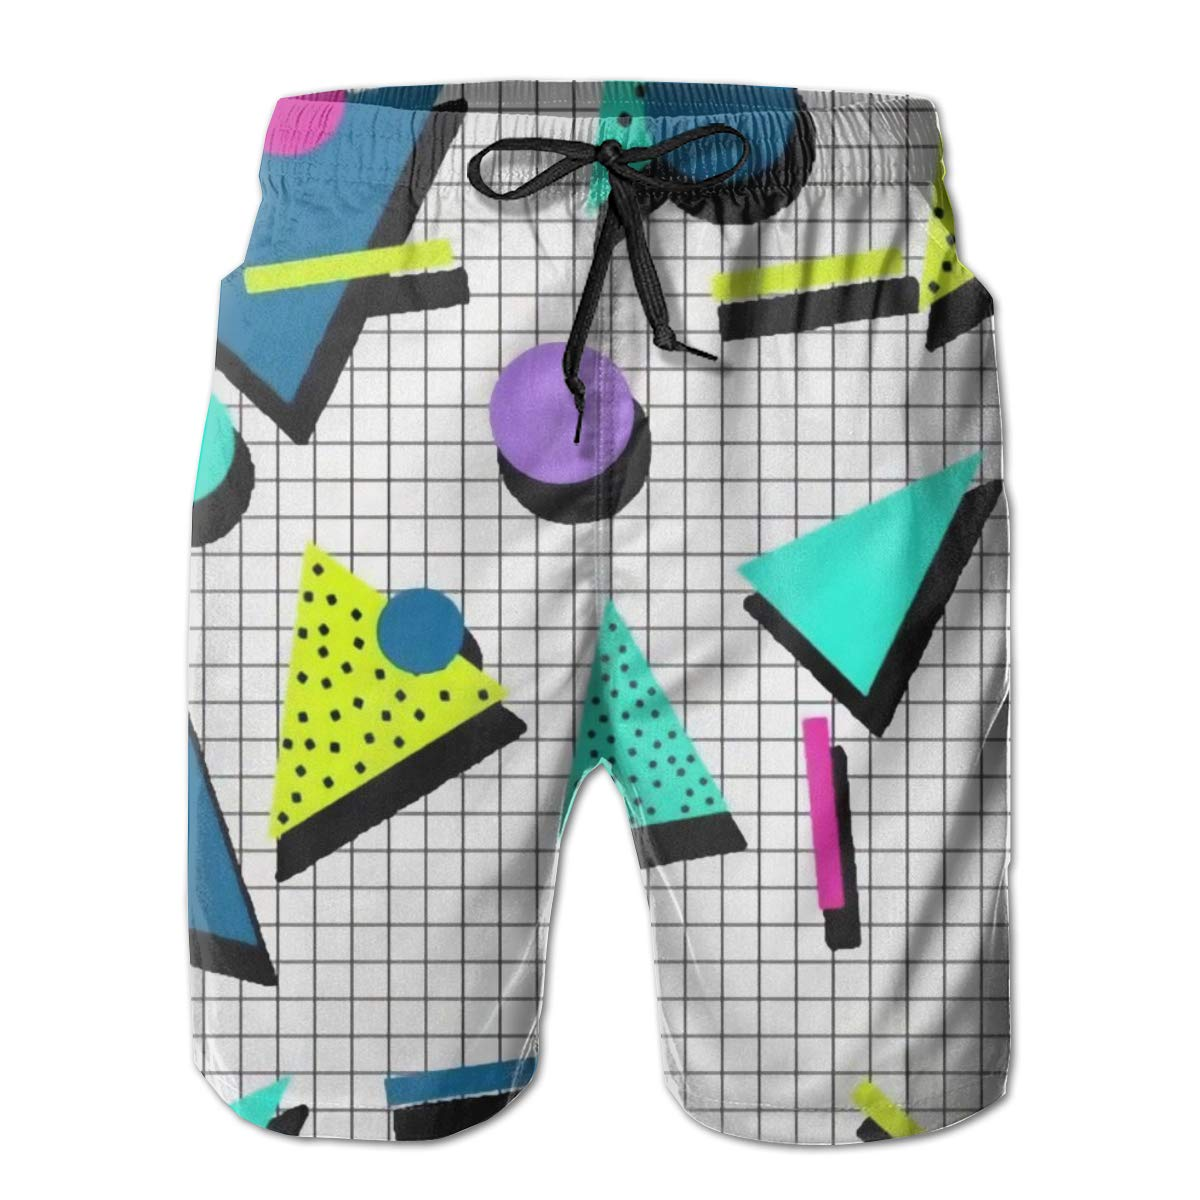 Airealy Men/'s Summer Beach Trunks 80s Pattern Drawstring Elastic Waist Quick Dry Surfing Beach Board Shorts